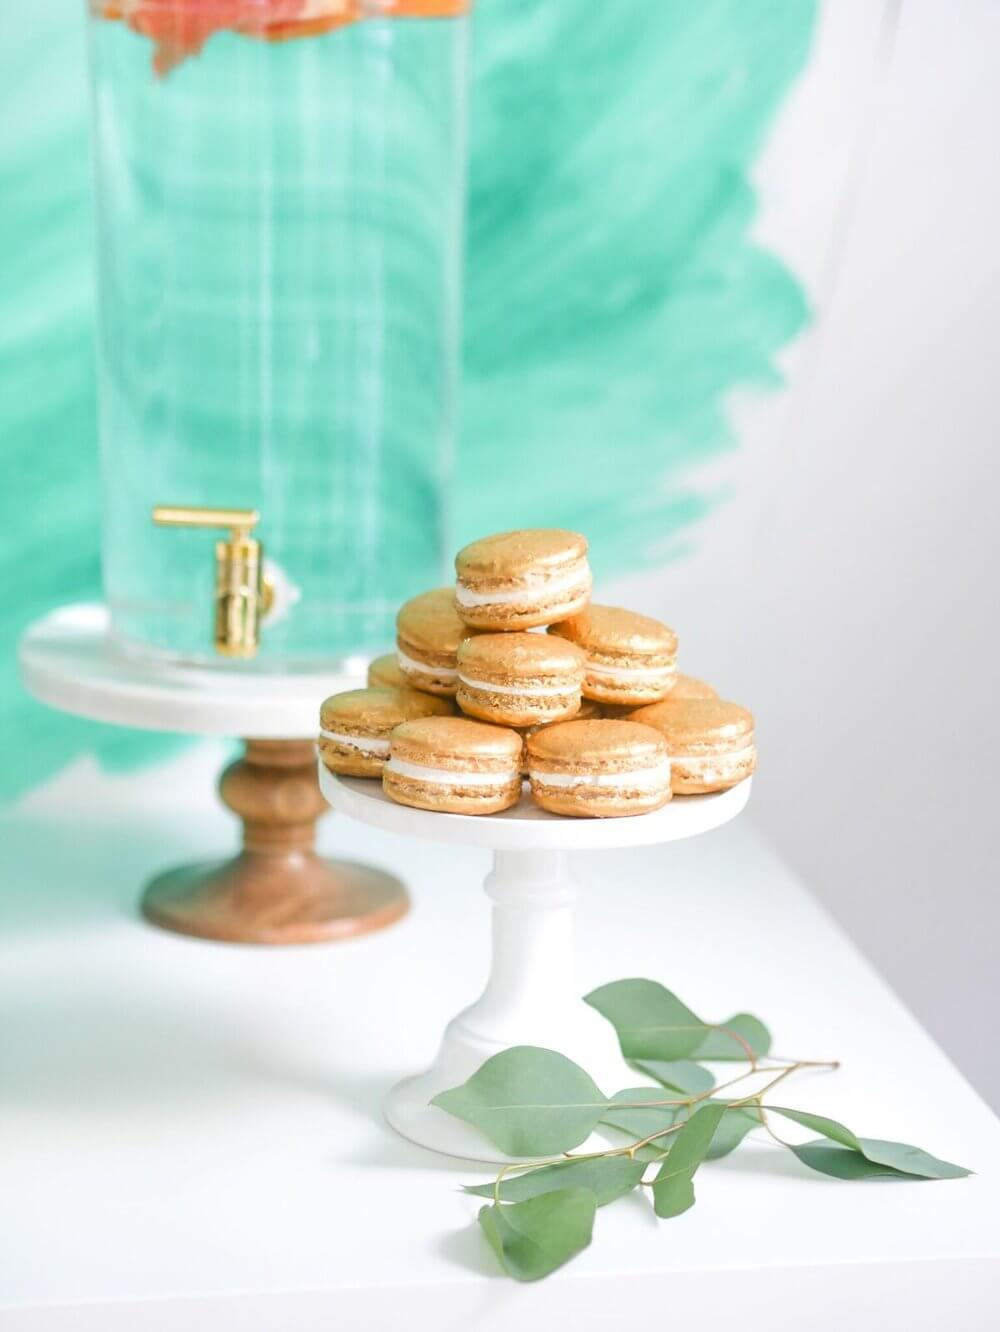 Yummy Macarons in gold color